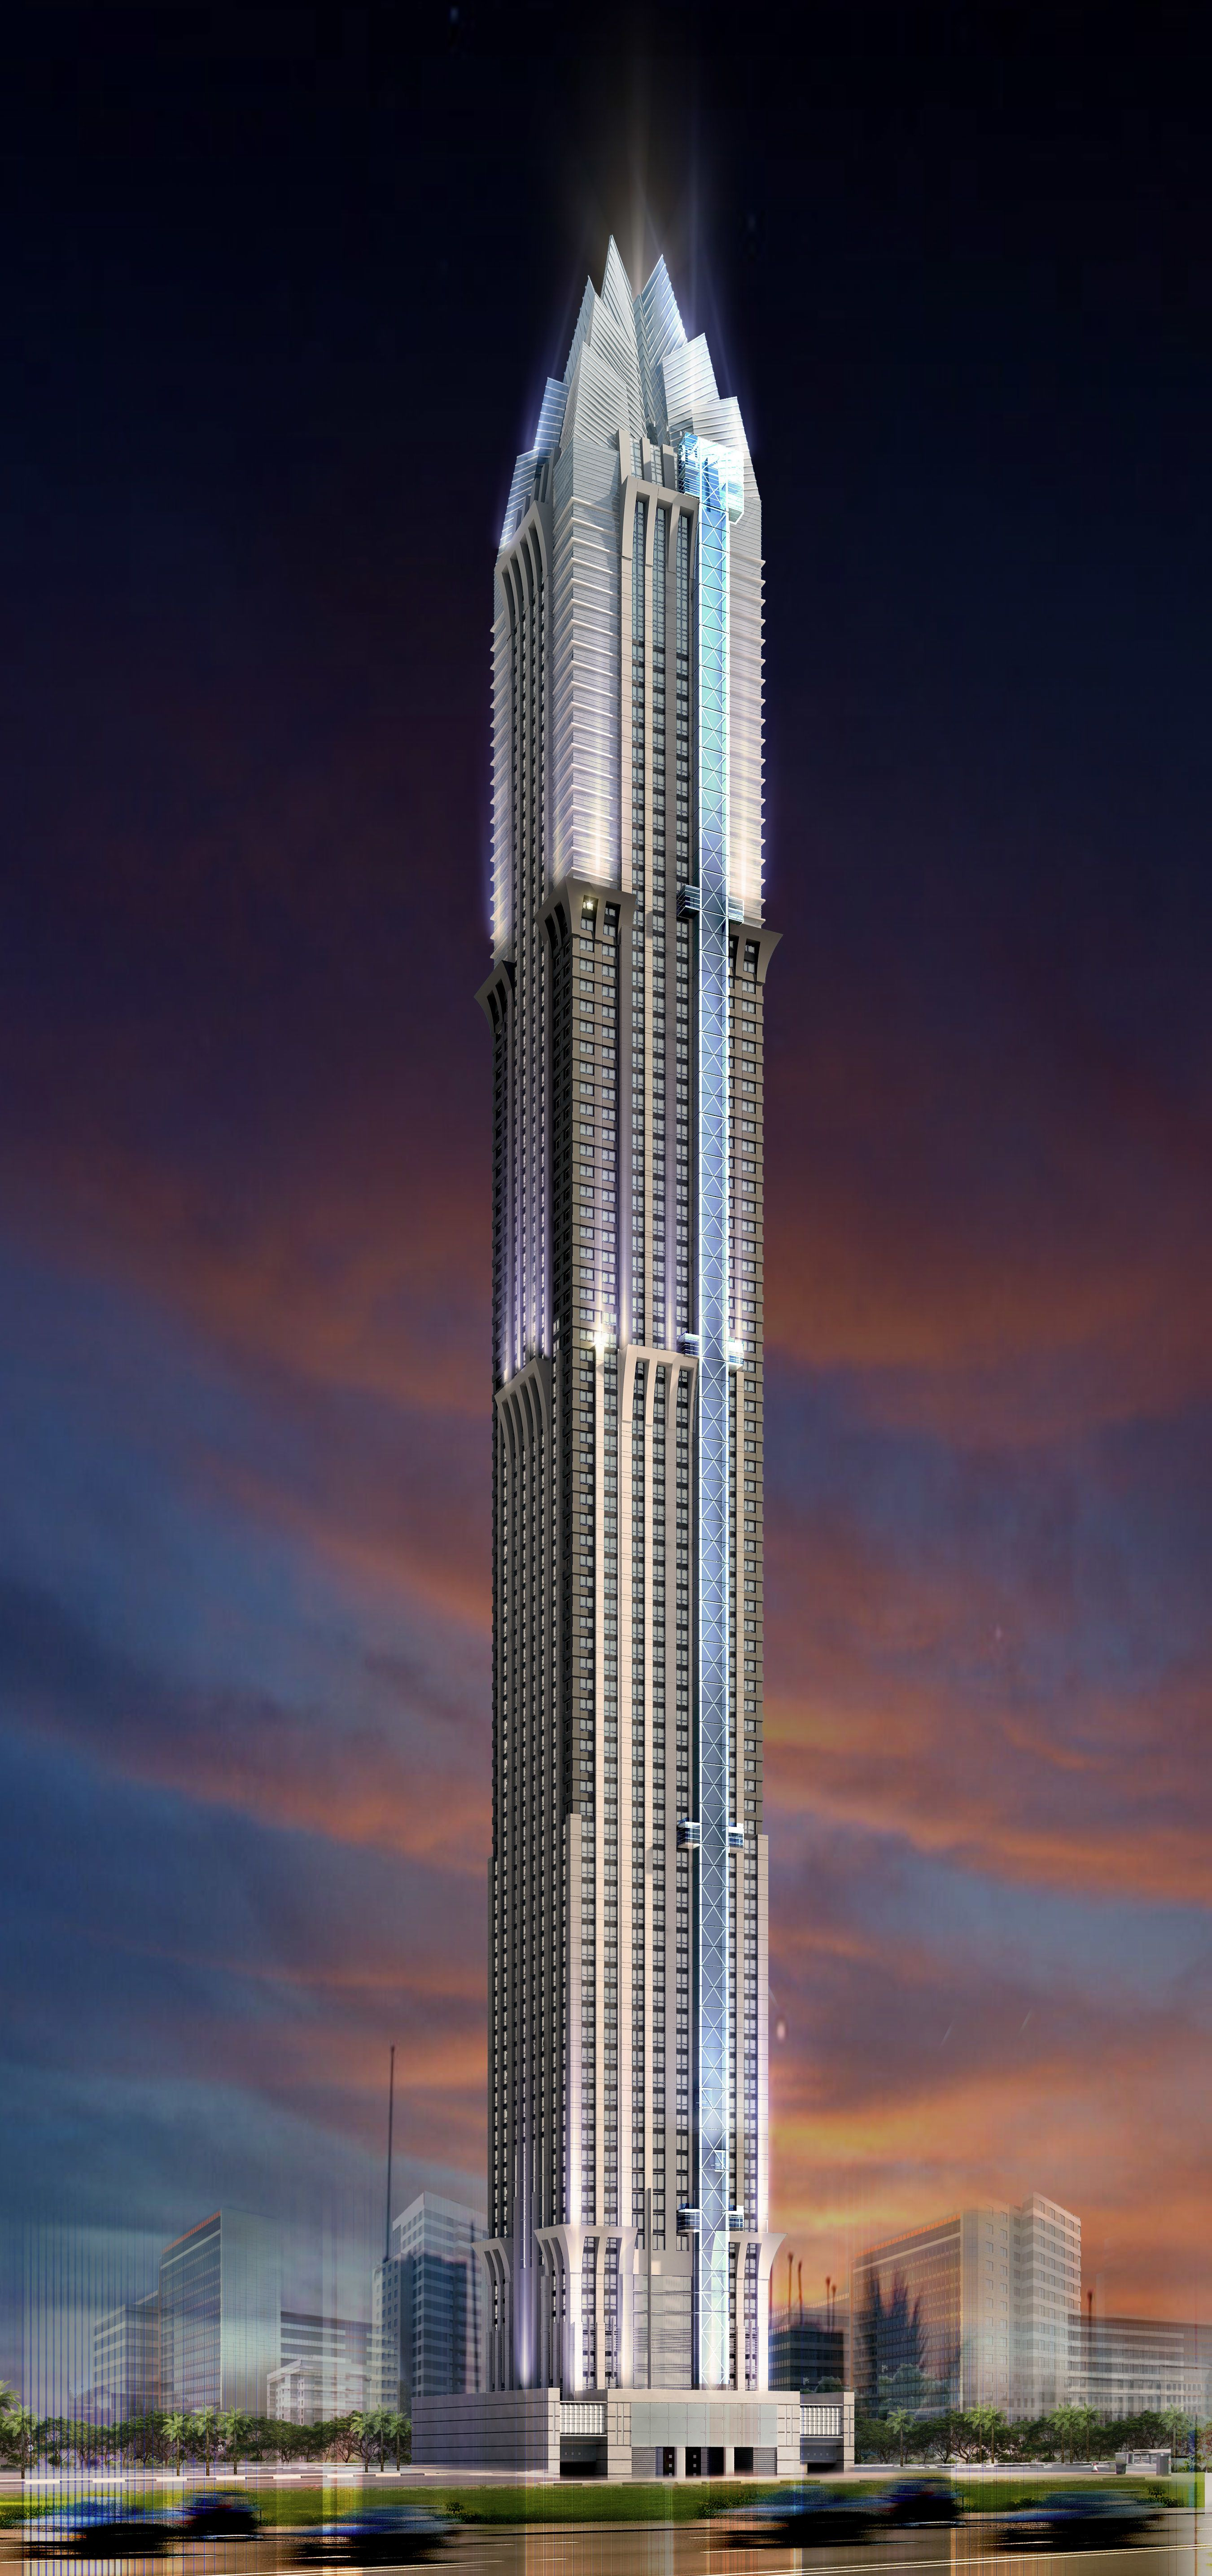 Devised by the Middle Eastern firm National Engineering Bureau, the Marina 101 will stand 1,399 feet above Dubai to become the world's tallest residential building. Read on for more of the world's tallest skyscrapers.